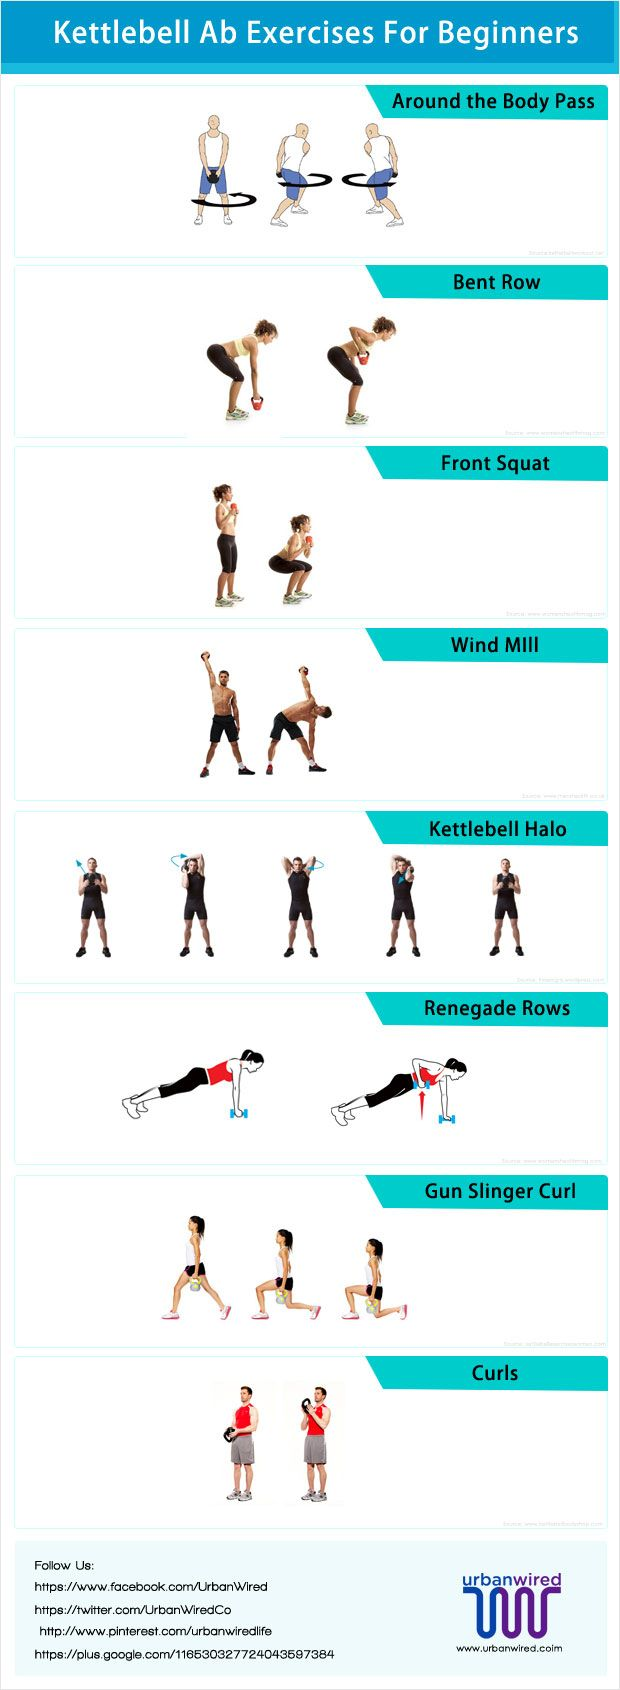 Circuito Kettlebell : Circuito trx and kettlebell workouts for men one off